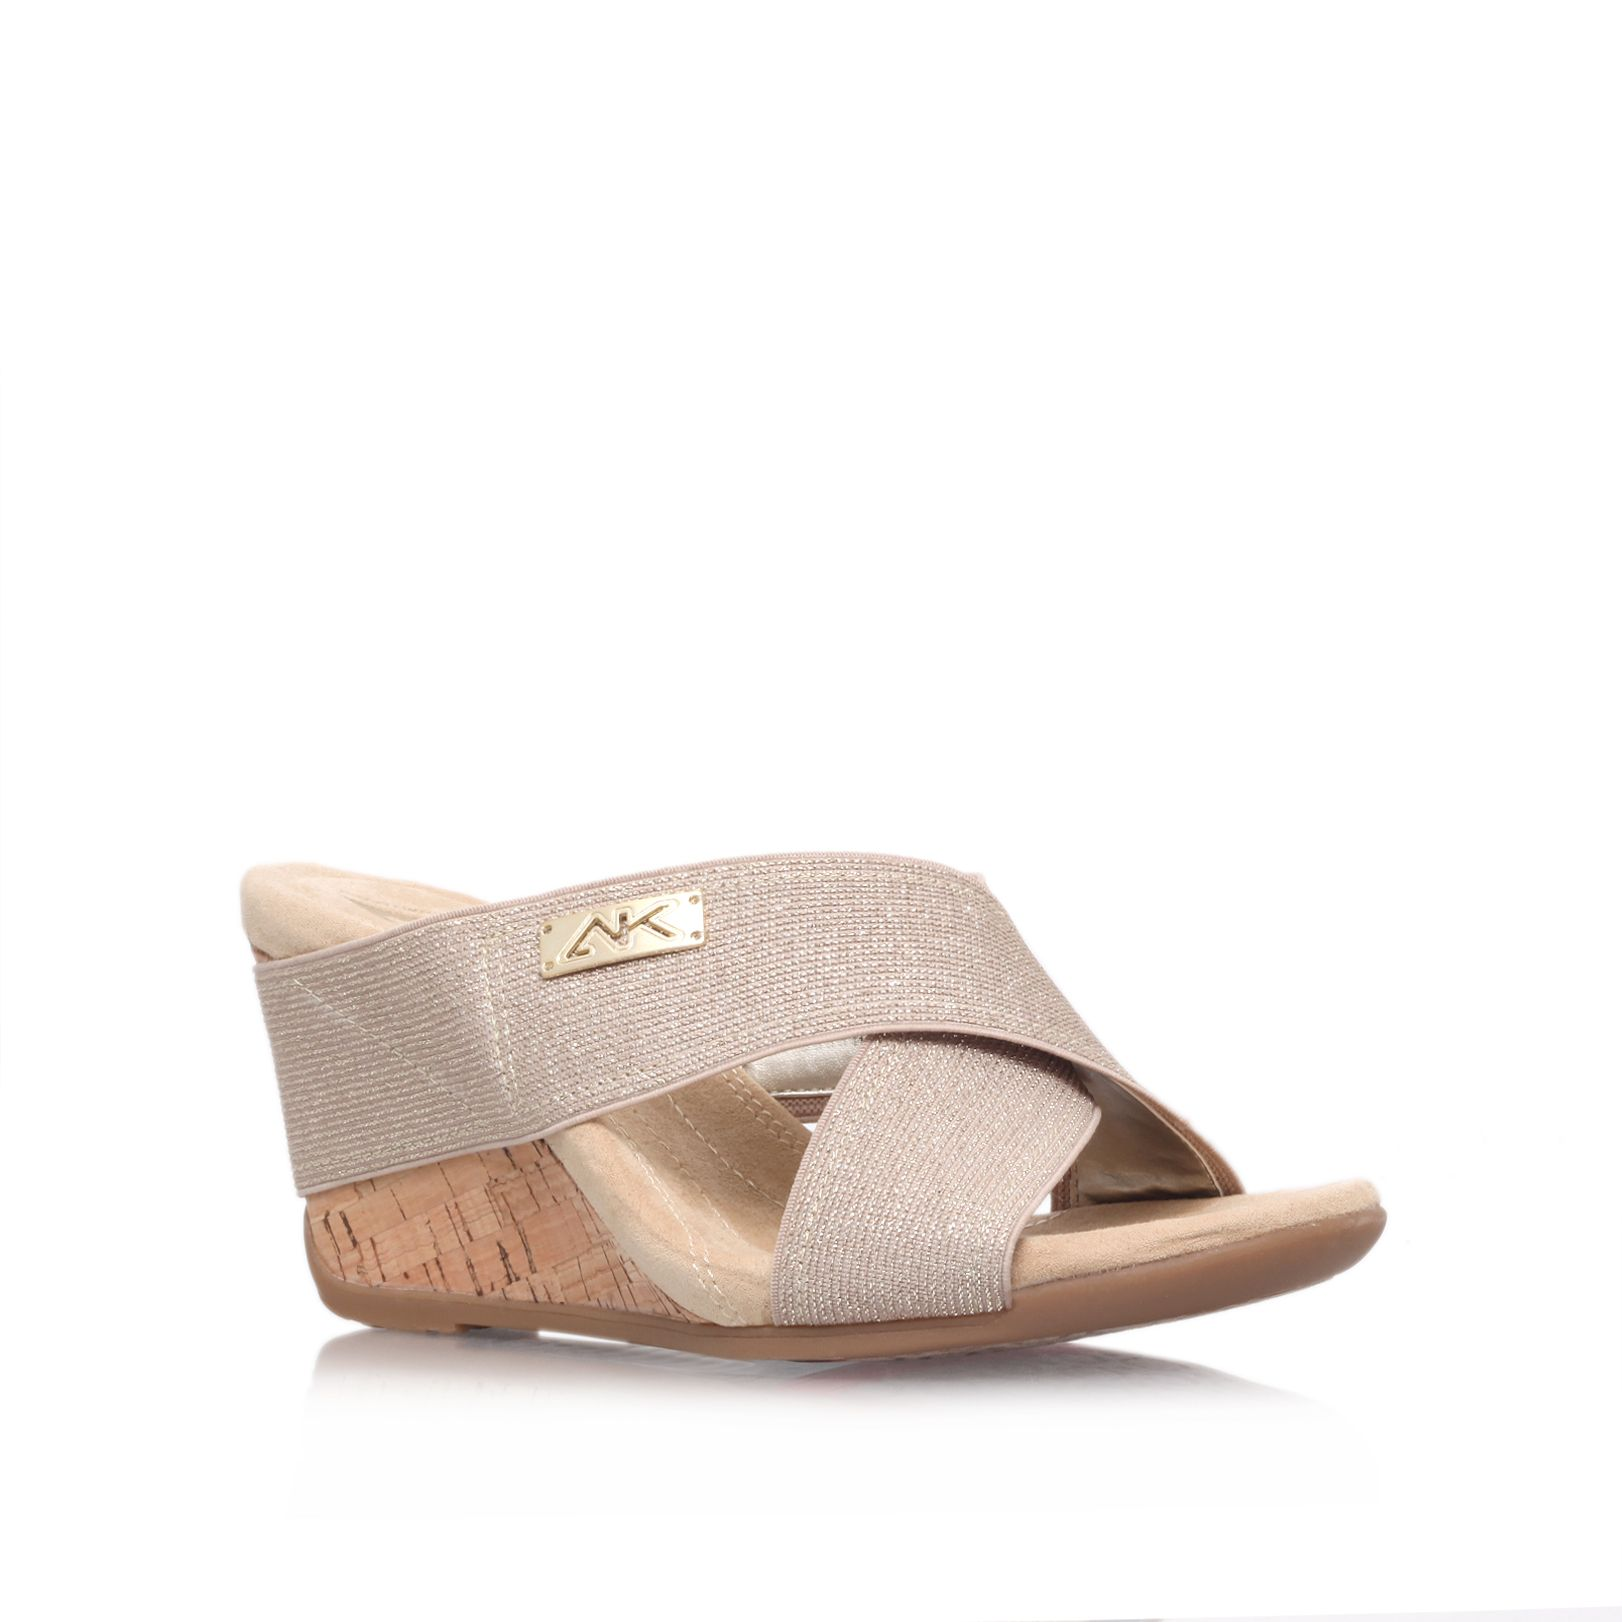 Lorri2 summer sandals